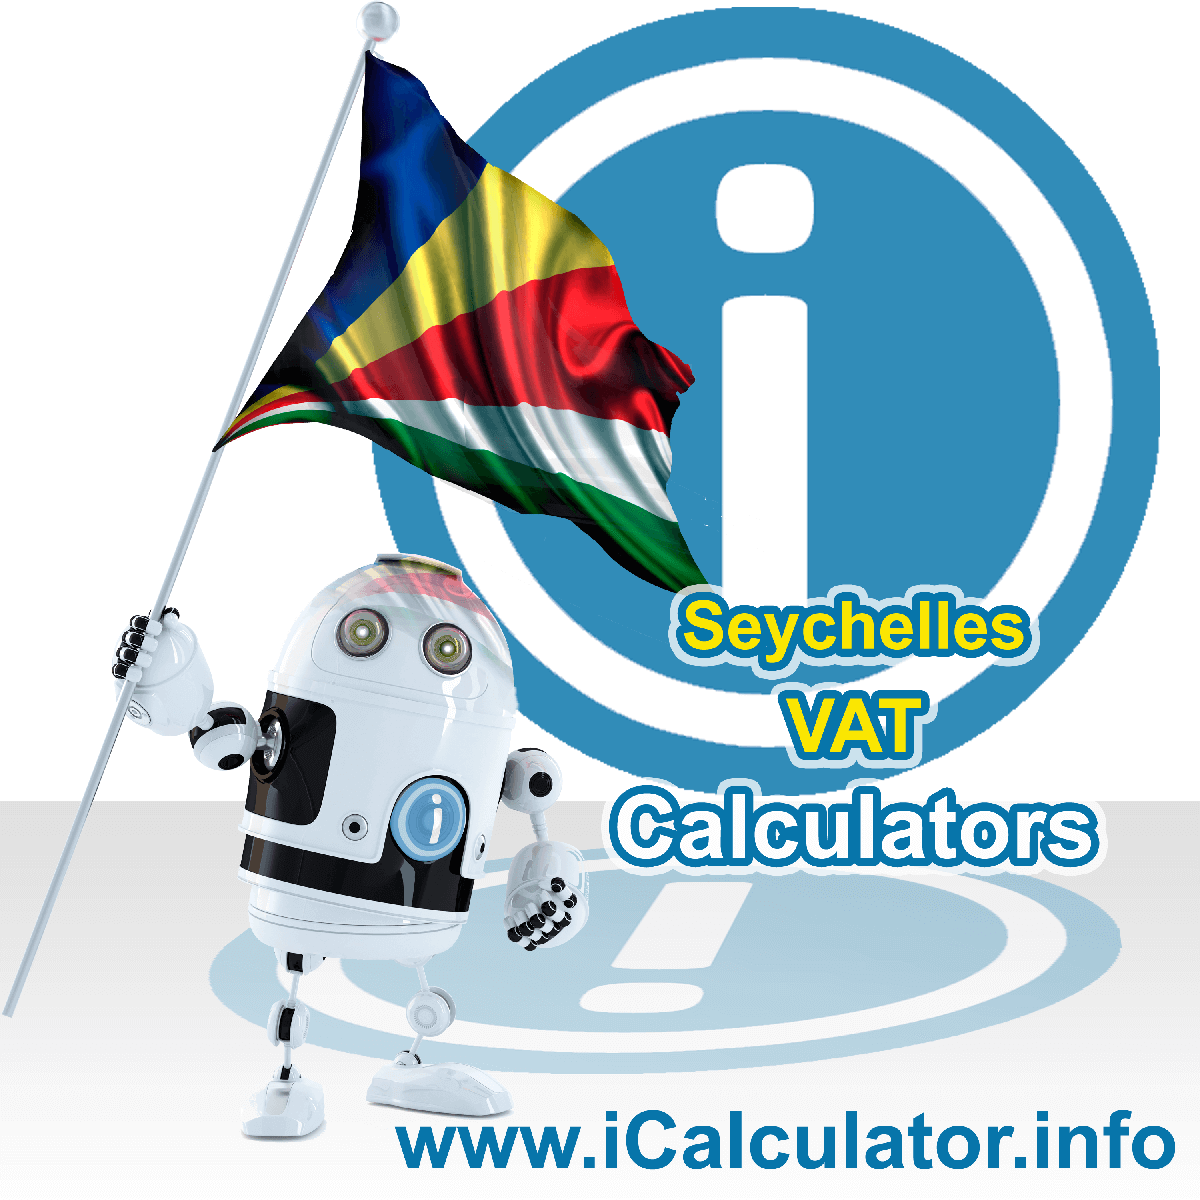 Seychelles VAT Calculator. This image shows the Seychelles flag and information relating to the VAT formula used for calculating Value Added Tax in Seychelles using the Seychelles VAT Calculator in 2020